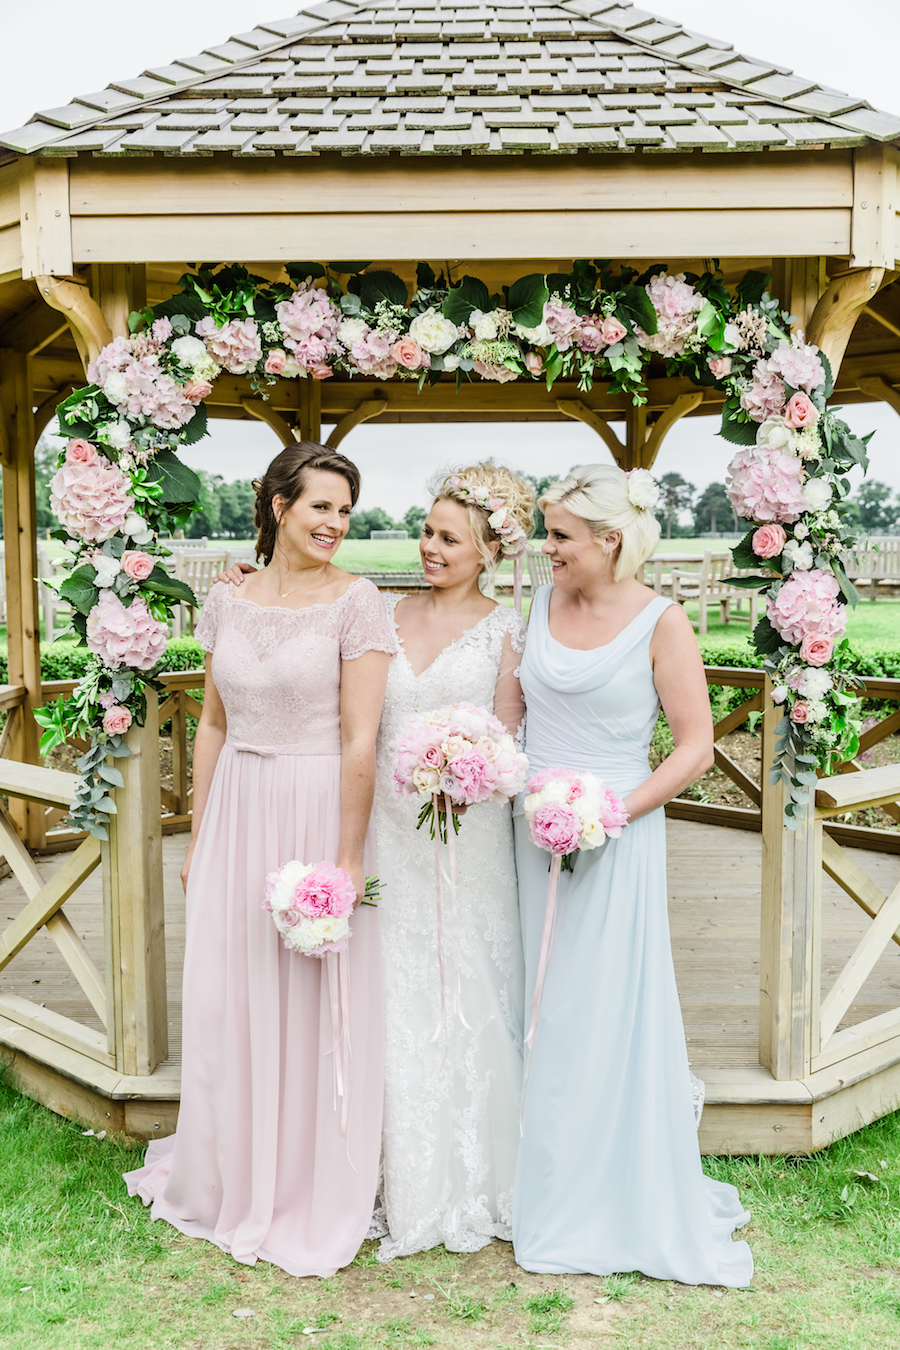 Wedding editorial from Wivenhoe House, image credit Ayshea Goldberg Photography (23)